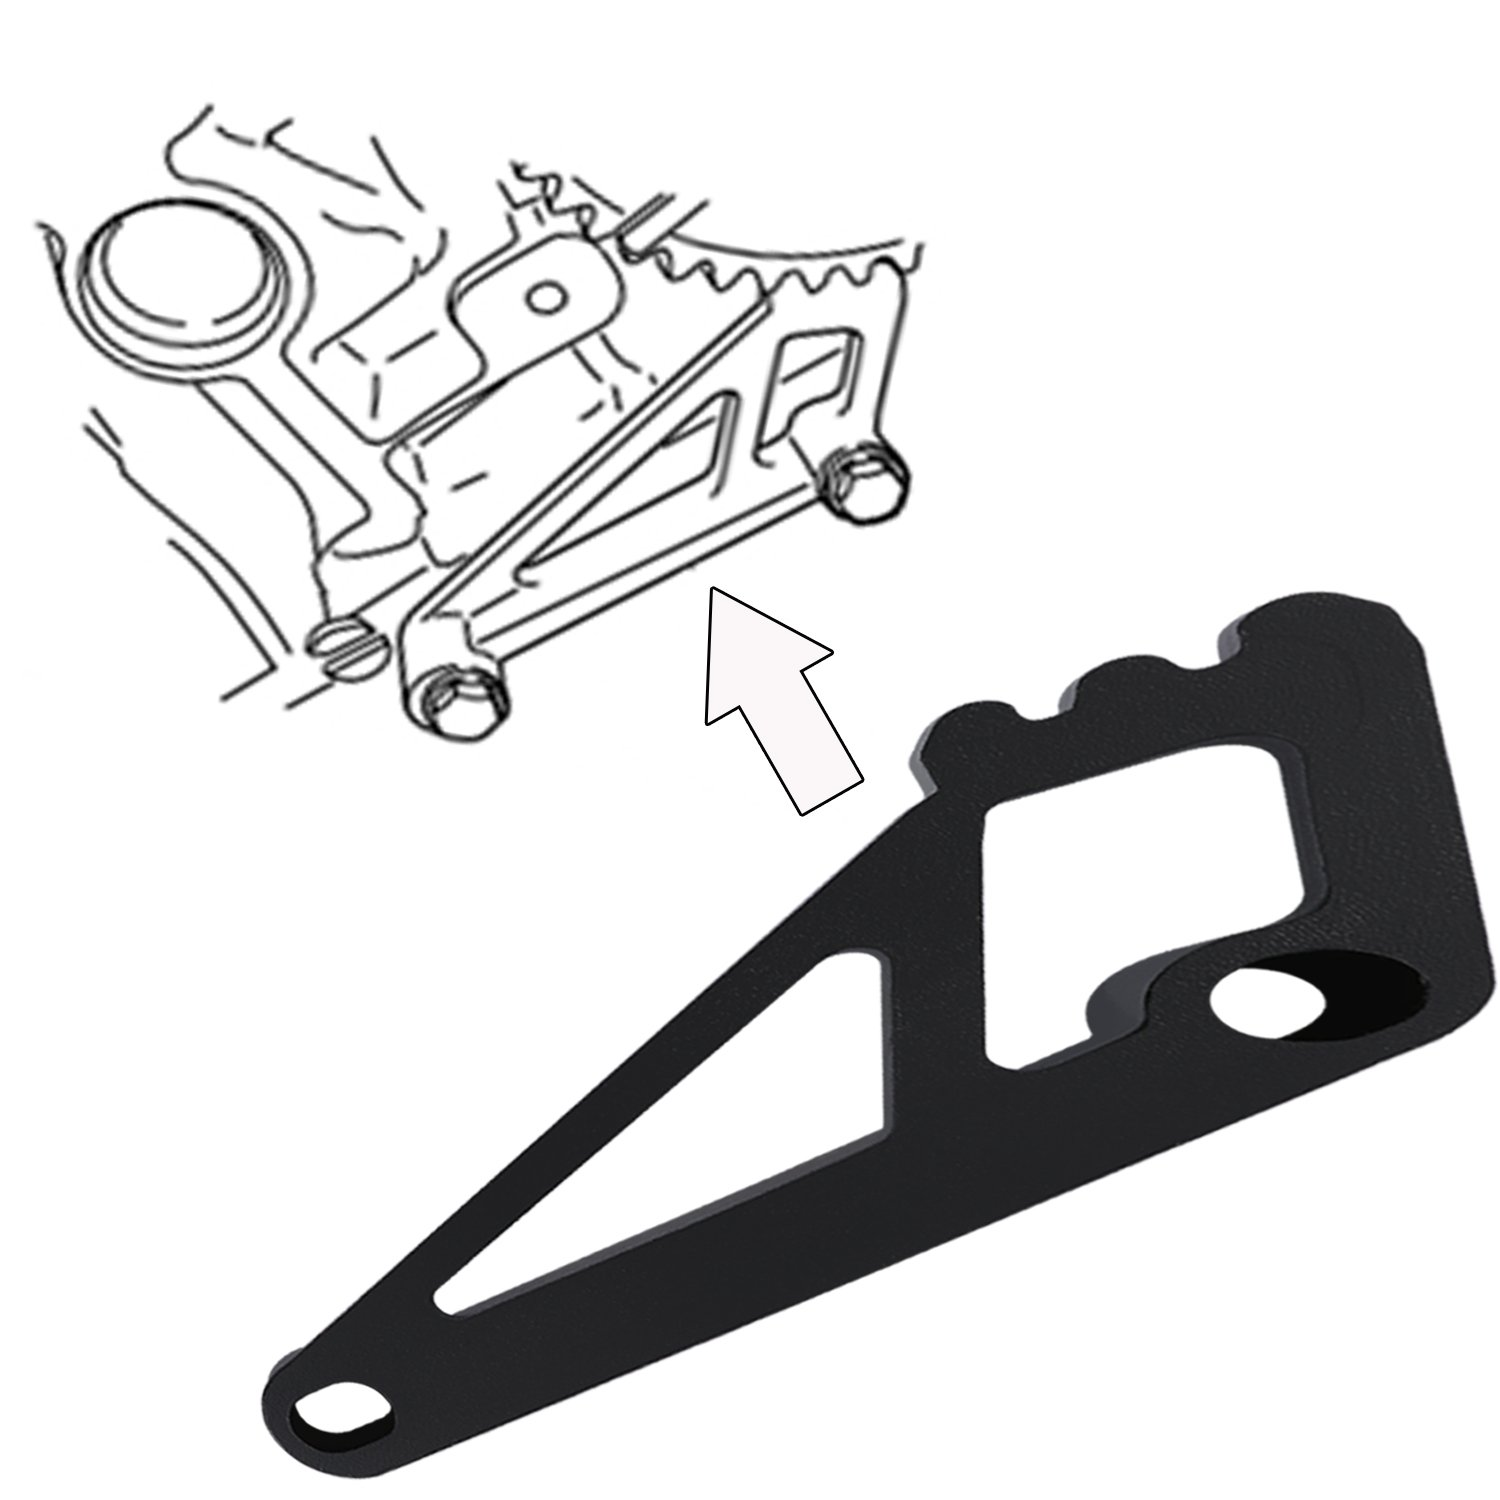 Yoursme Cam Phaser Locking Holding Tool For Engine Ford